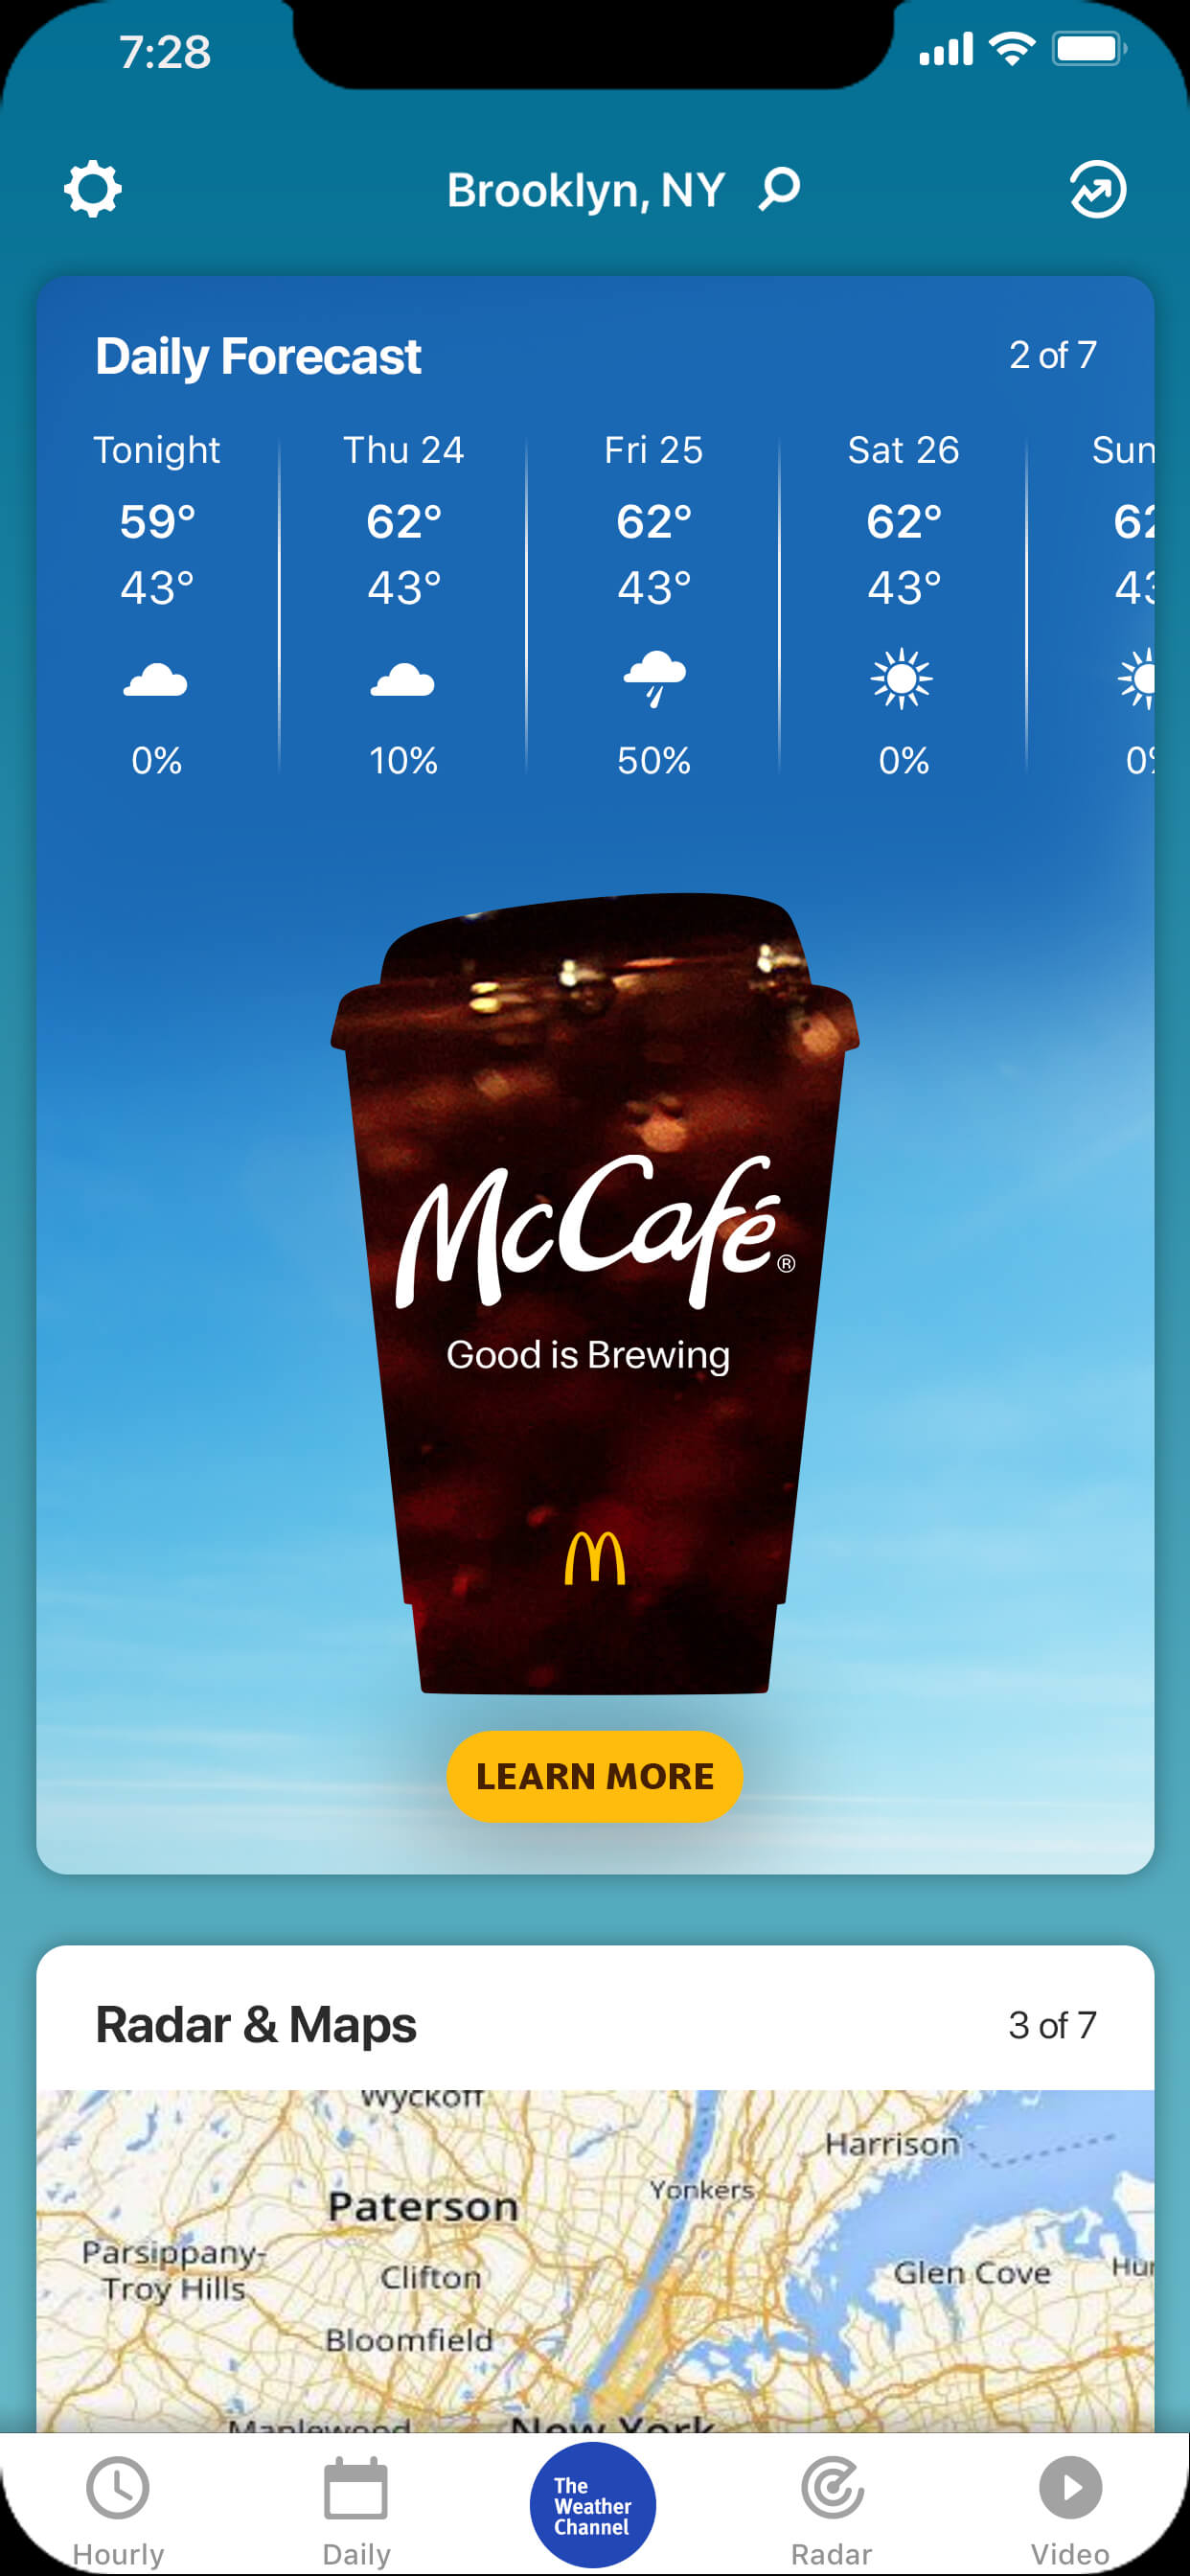 McCafe_IF_McCade_IF_001_clear_day